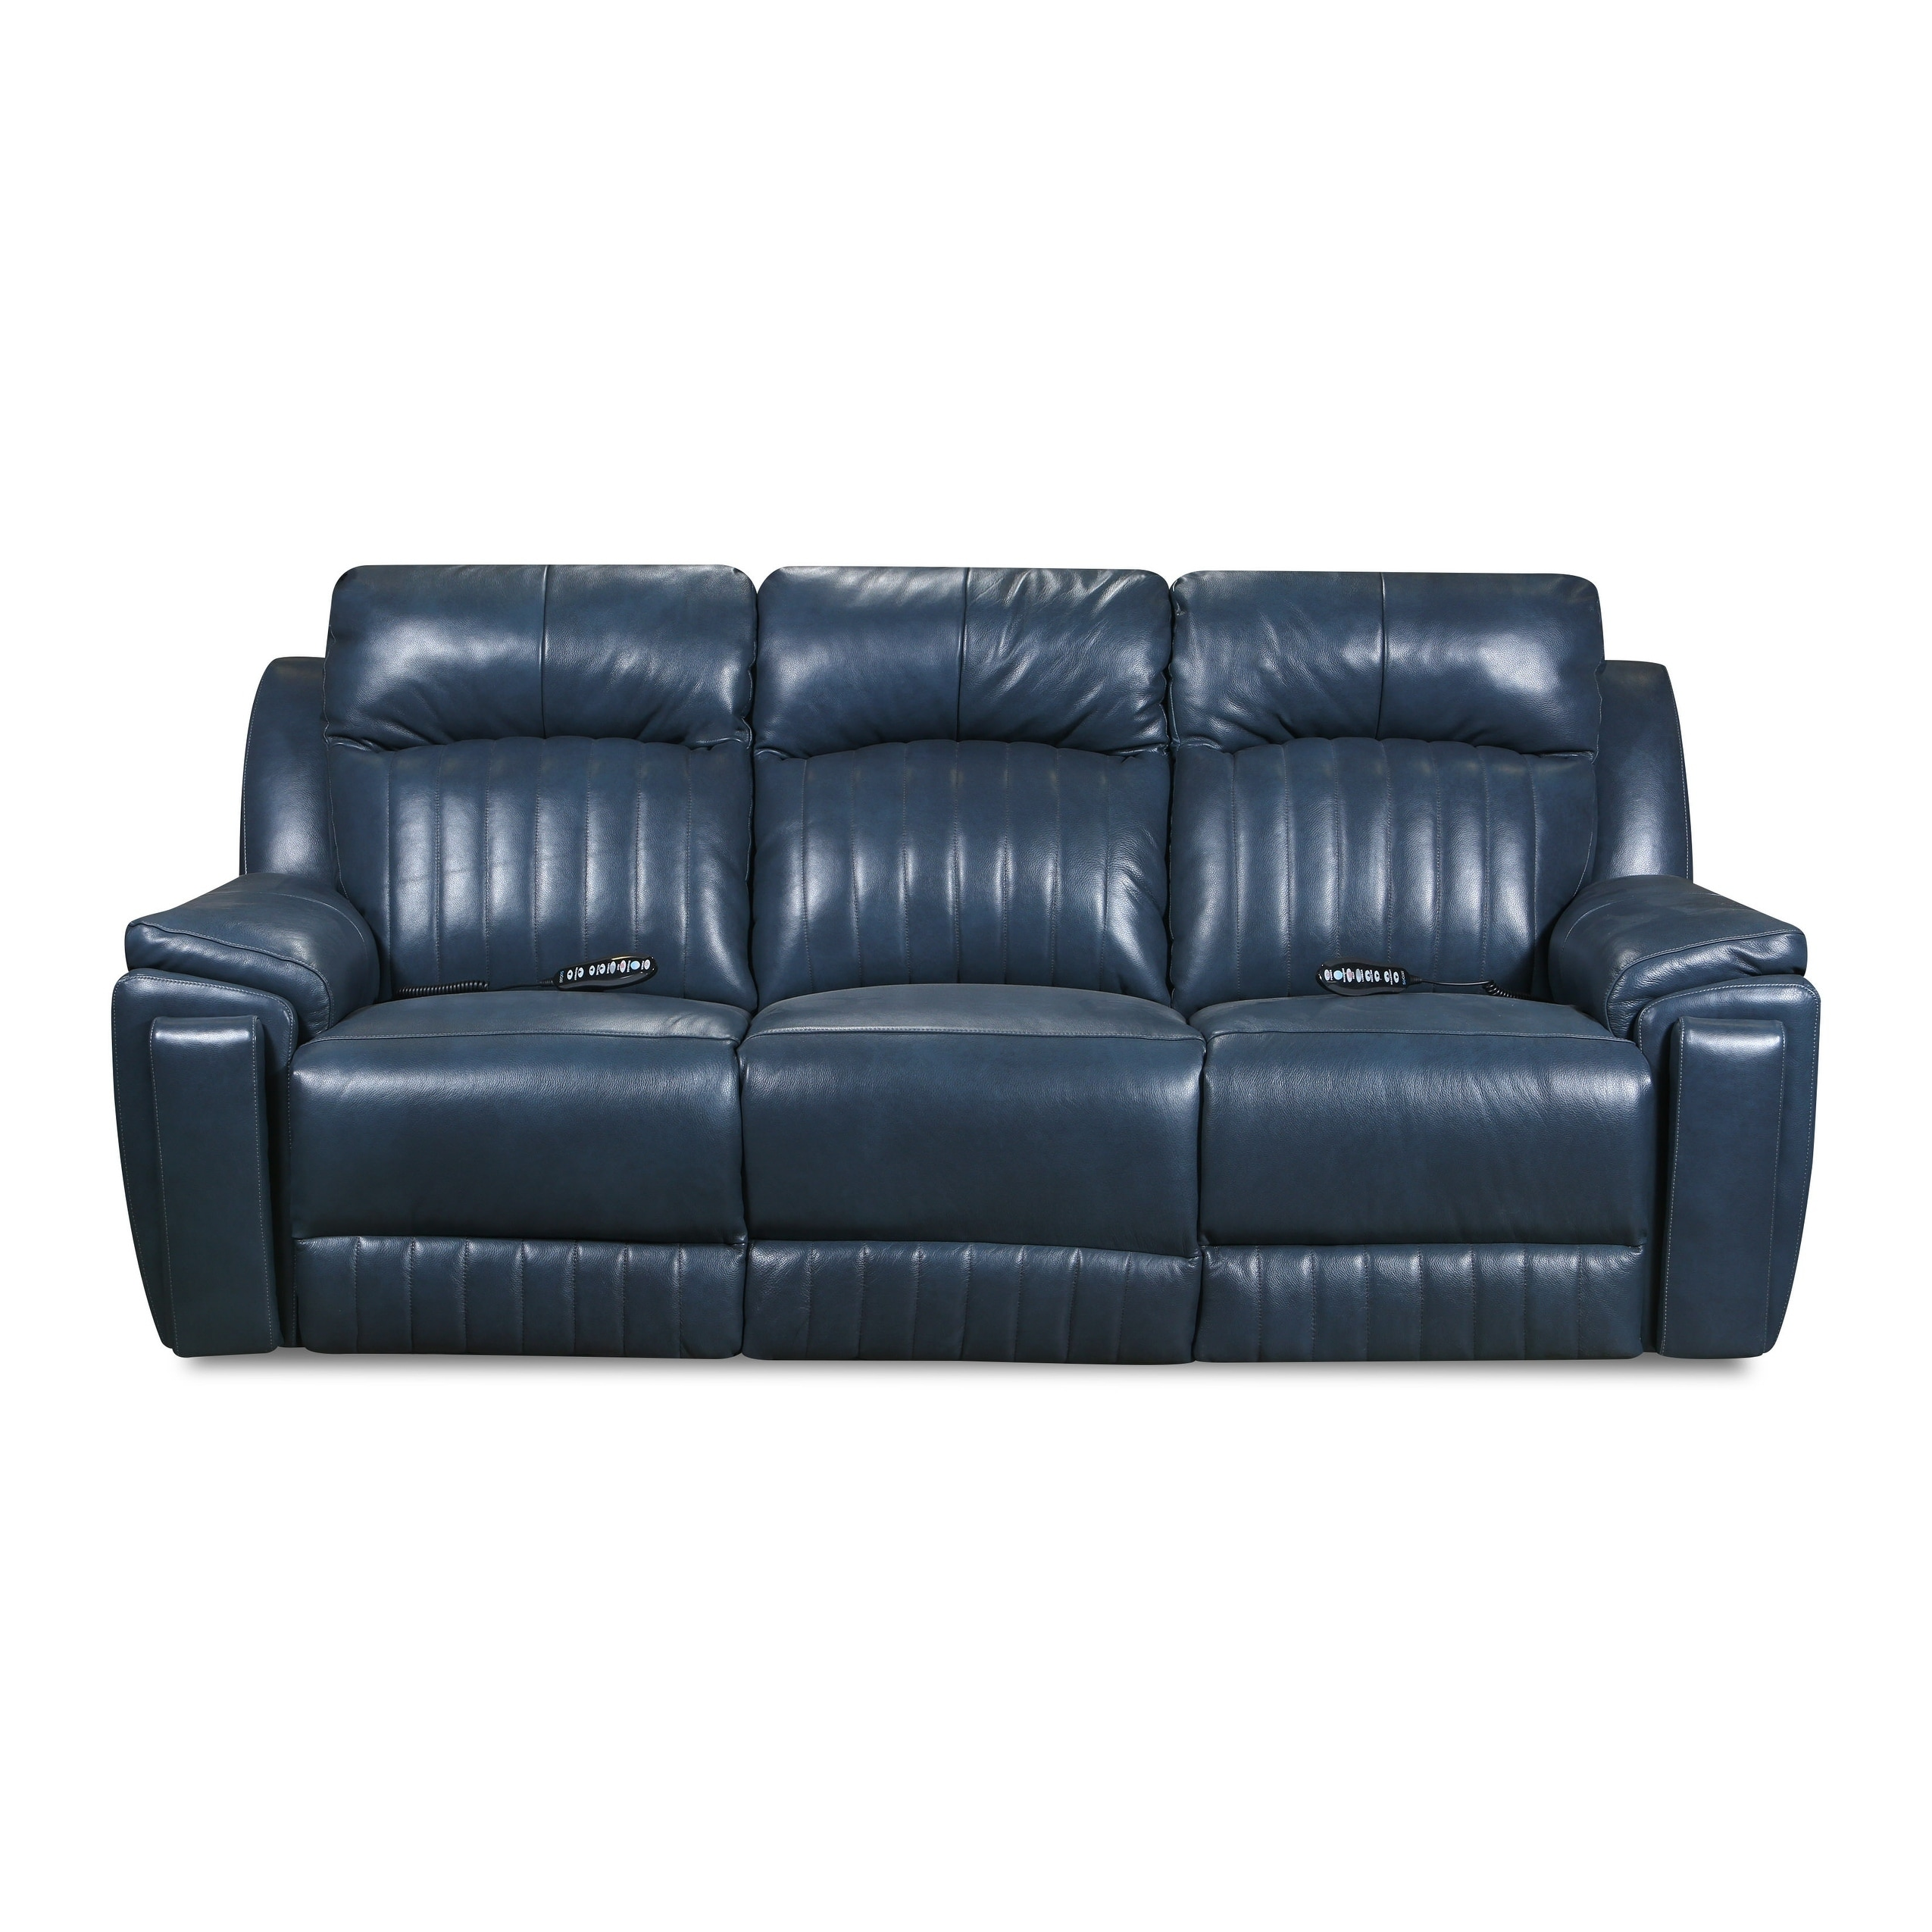 Shop Silver Screen Socozi Blue Leather Reclining Sofa With Massage